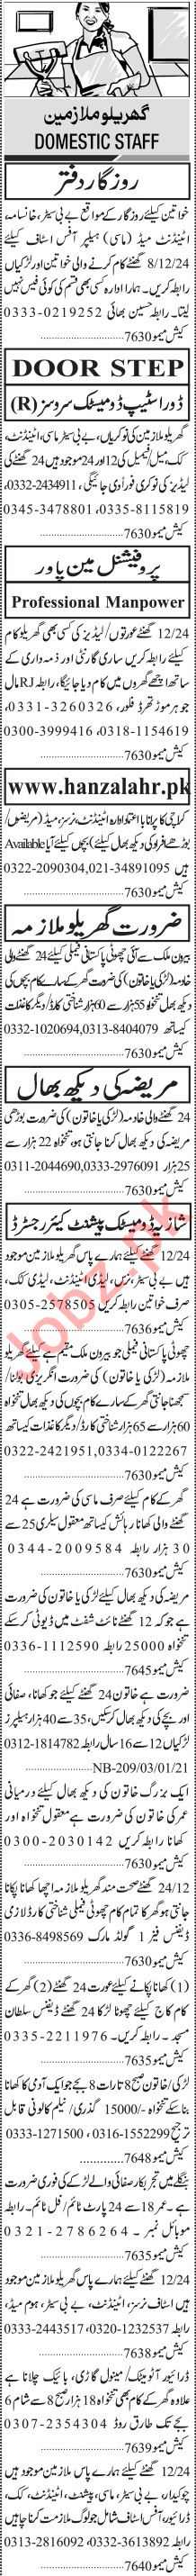 Jang Sunday Classified Ads 3rd Jan 2021 for House Staff